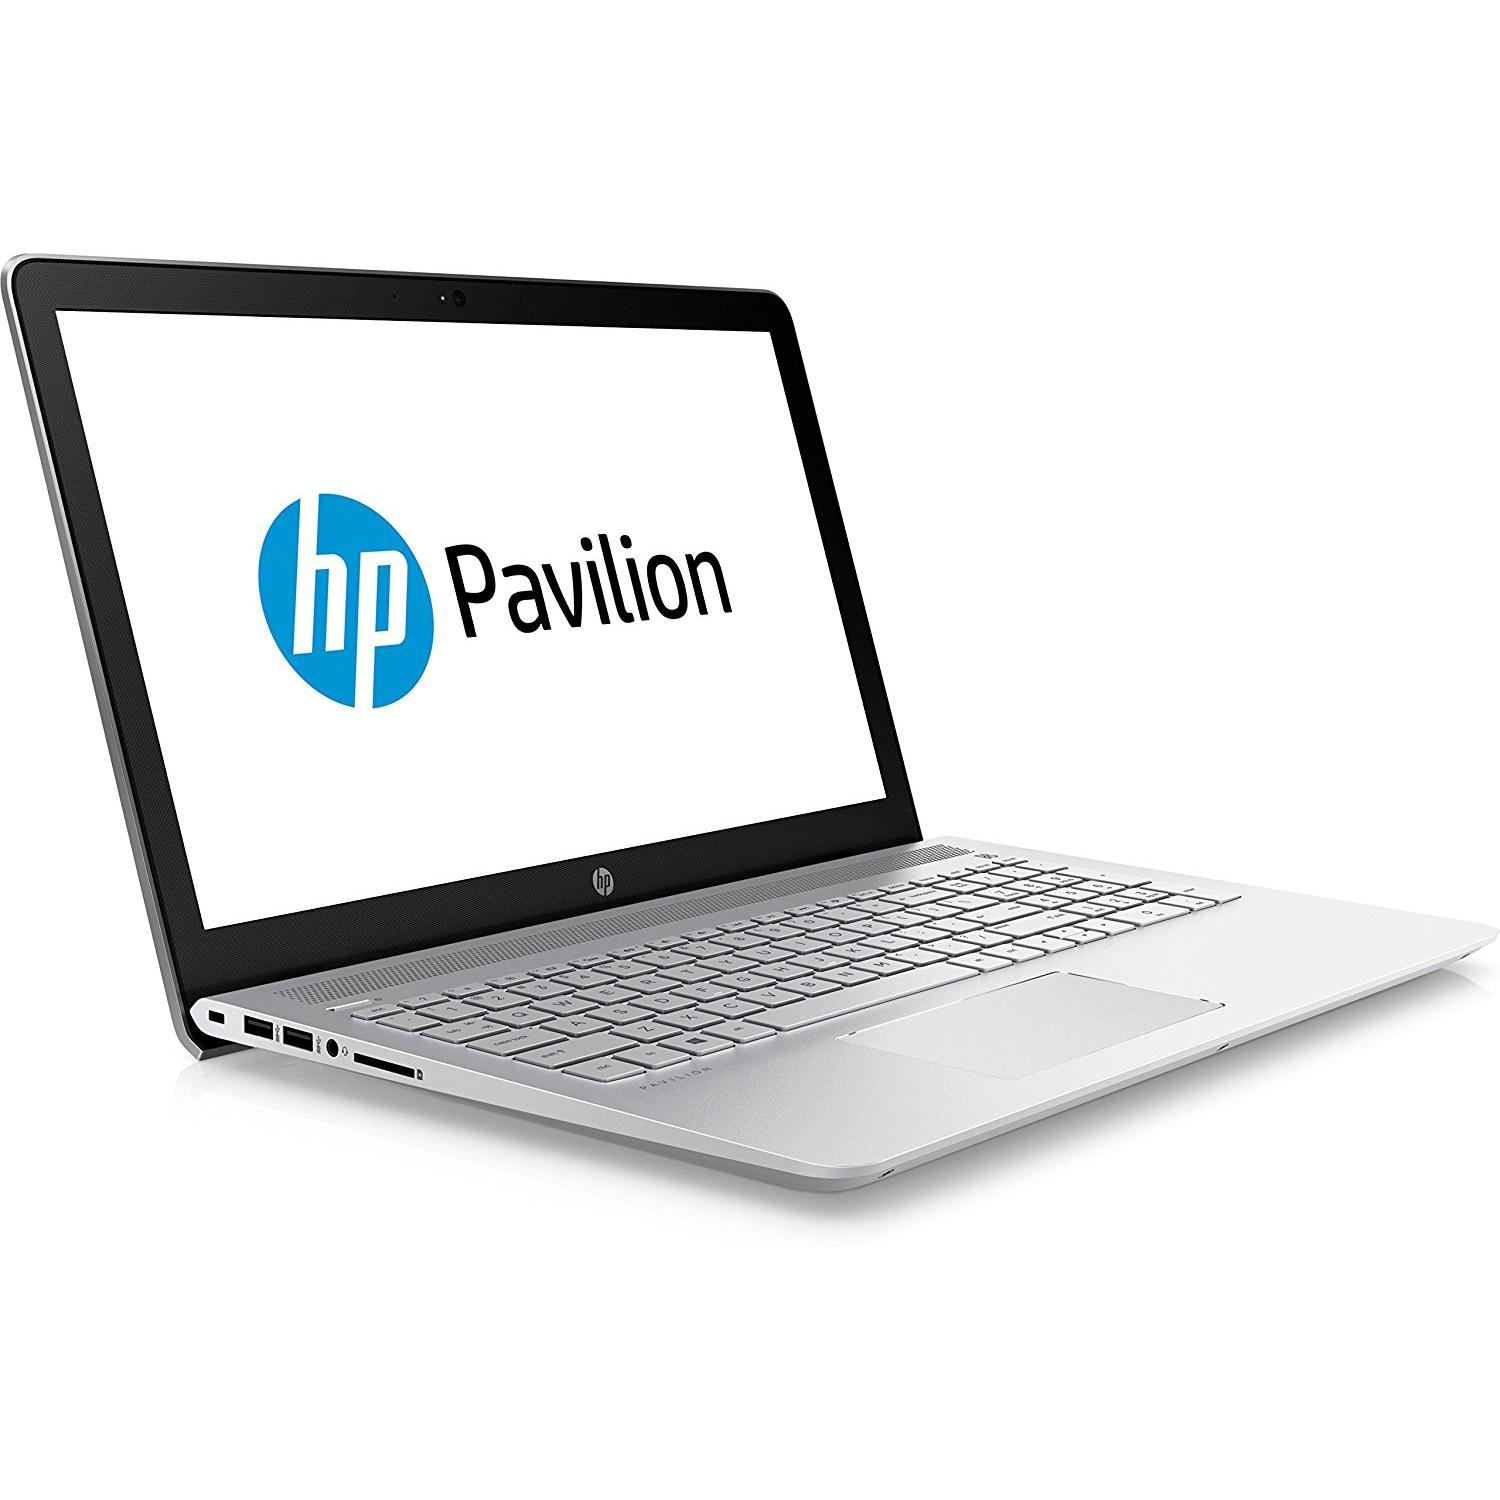 HP Pavilion 15.6in AMD A6 4GB Touchscreen Notebook PC